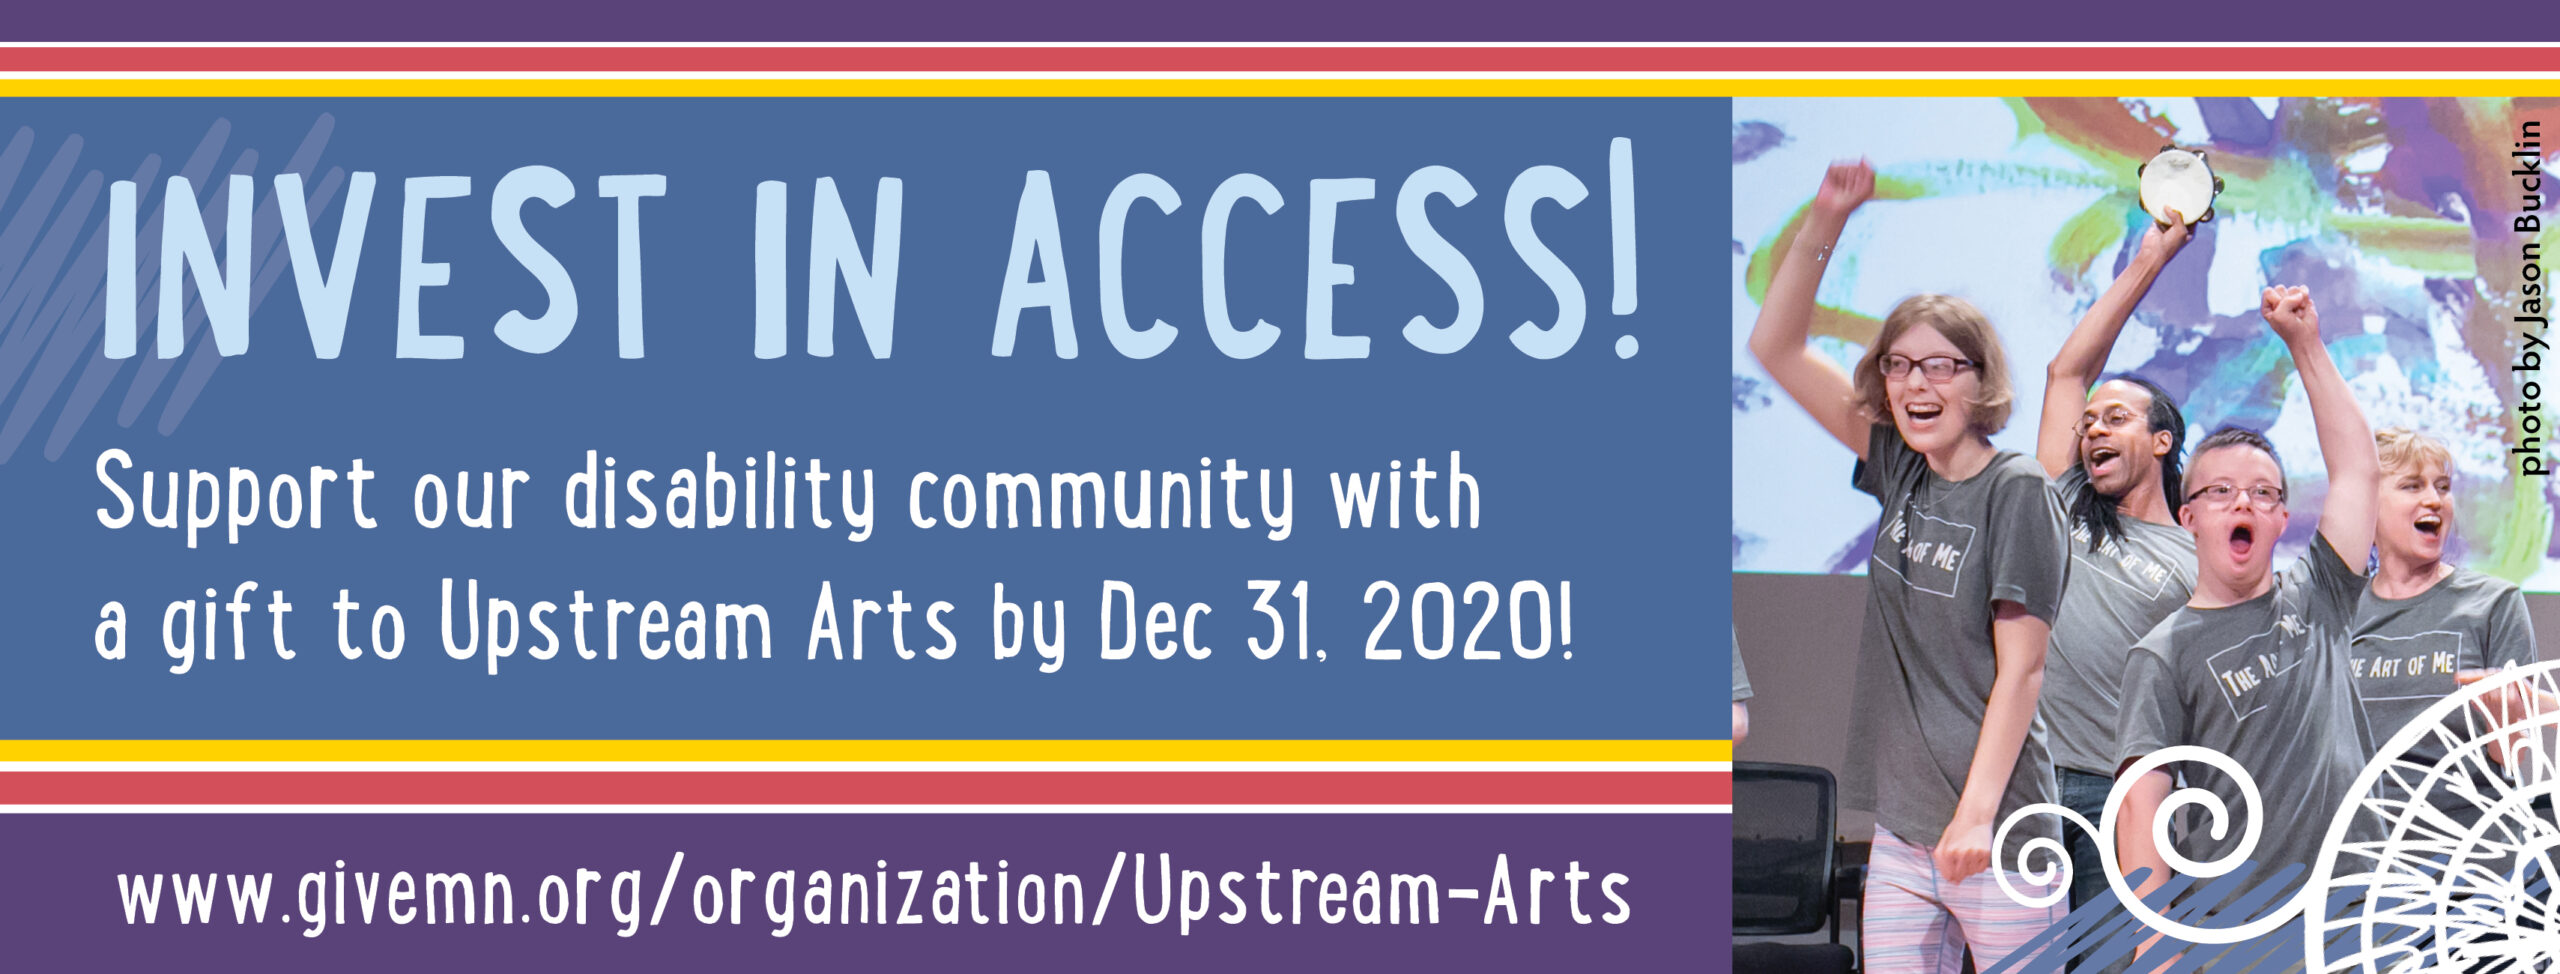 Colorful banner with rainbow stripes that reads in bolded text: Invest in Access! Support our disability community with a gift to Upstream Arts! http://givemn.org/upstream-arts. To the right, the photo of a group of UA participants onstage, raising their fists in a gesture of solidarity.